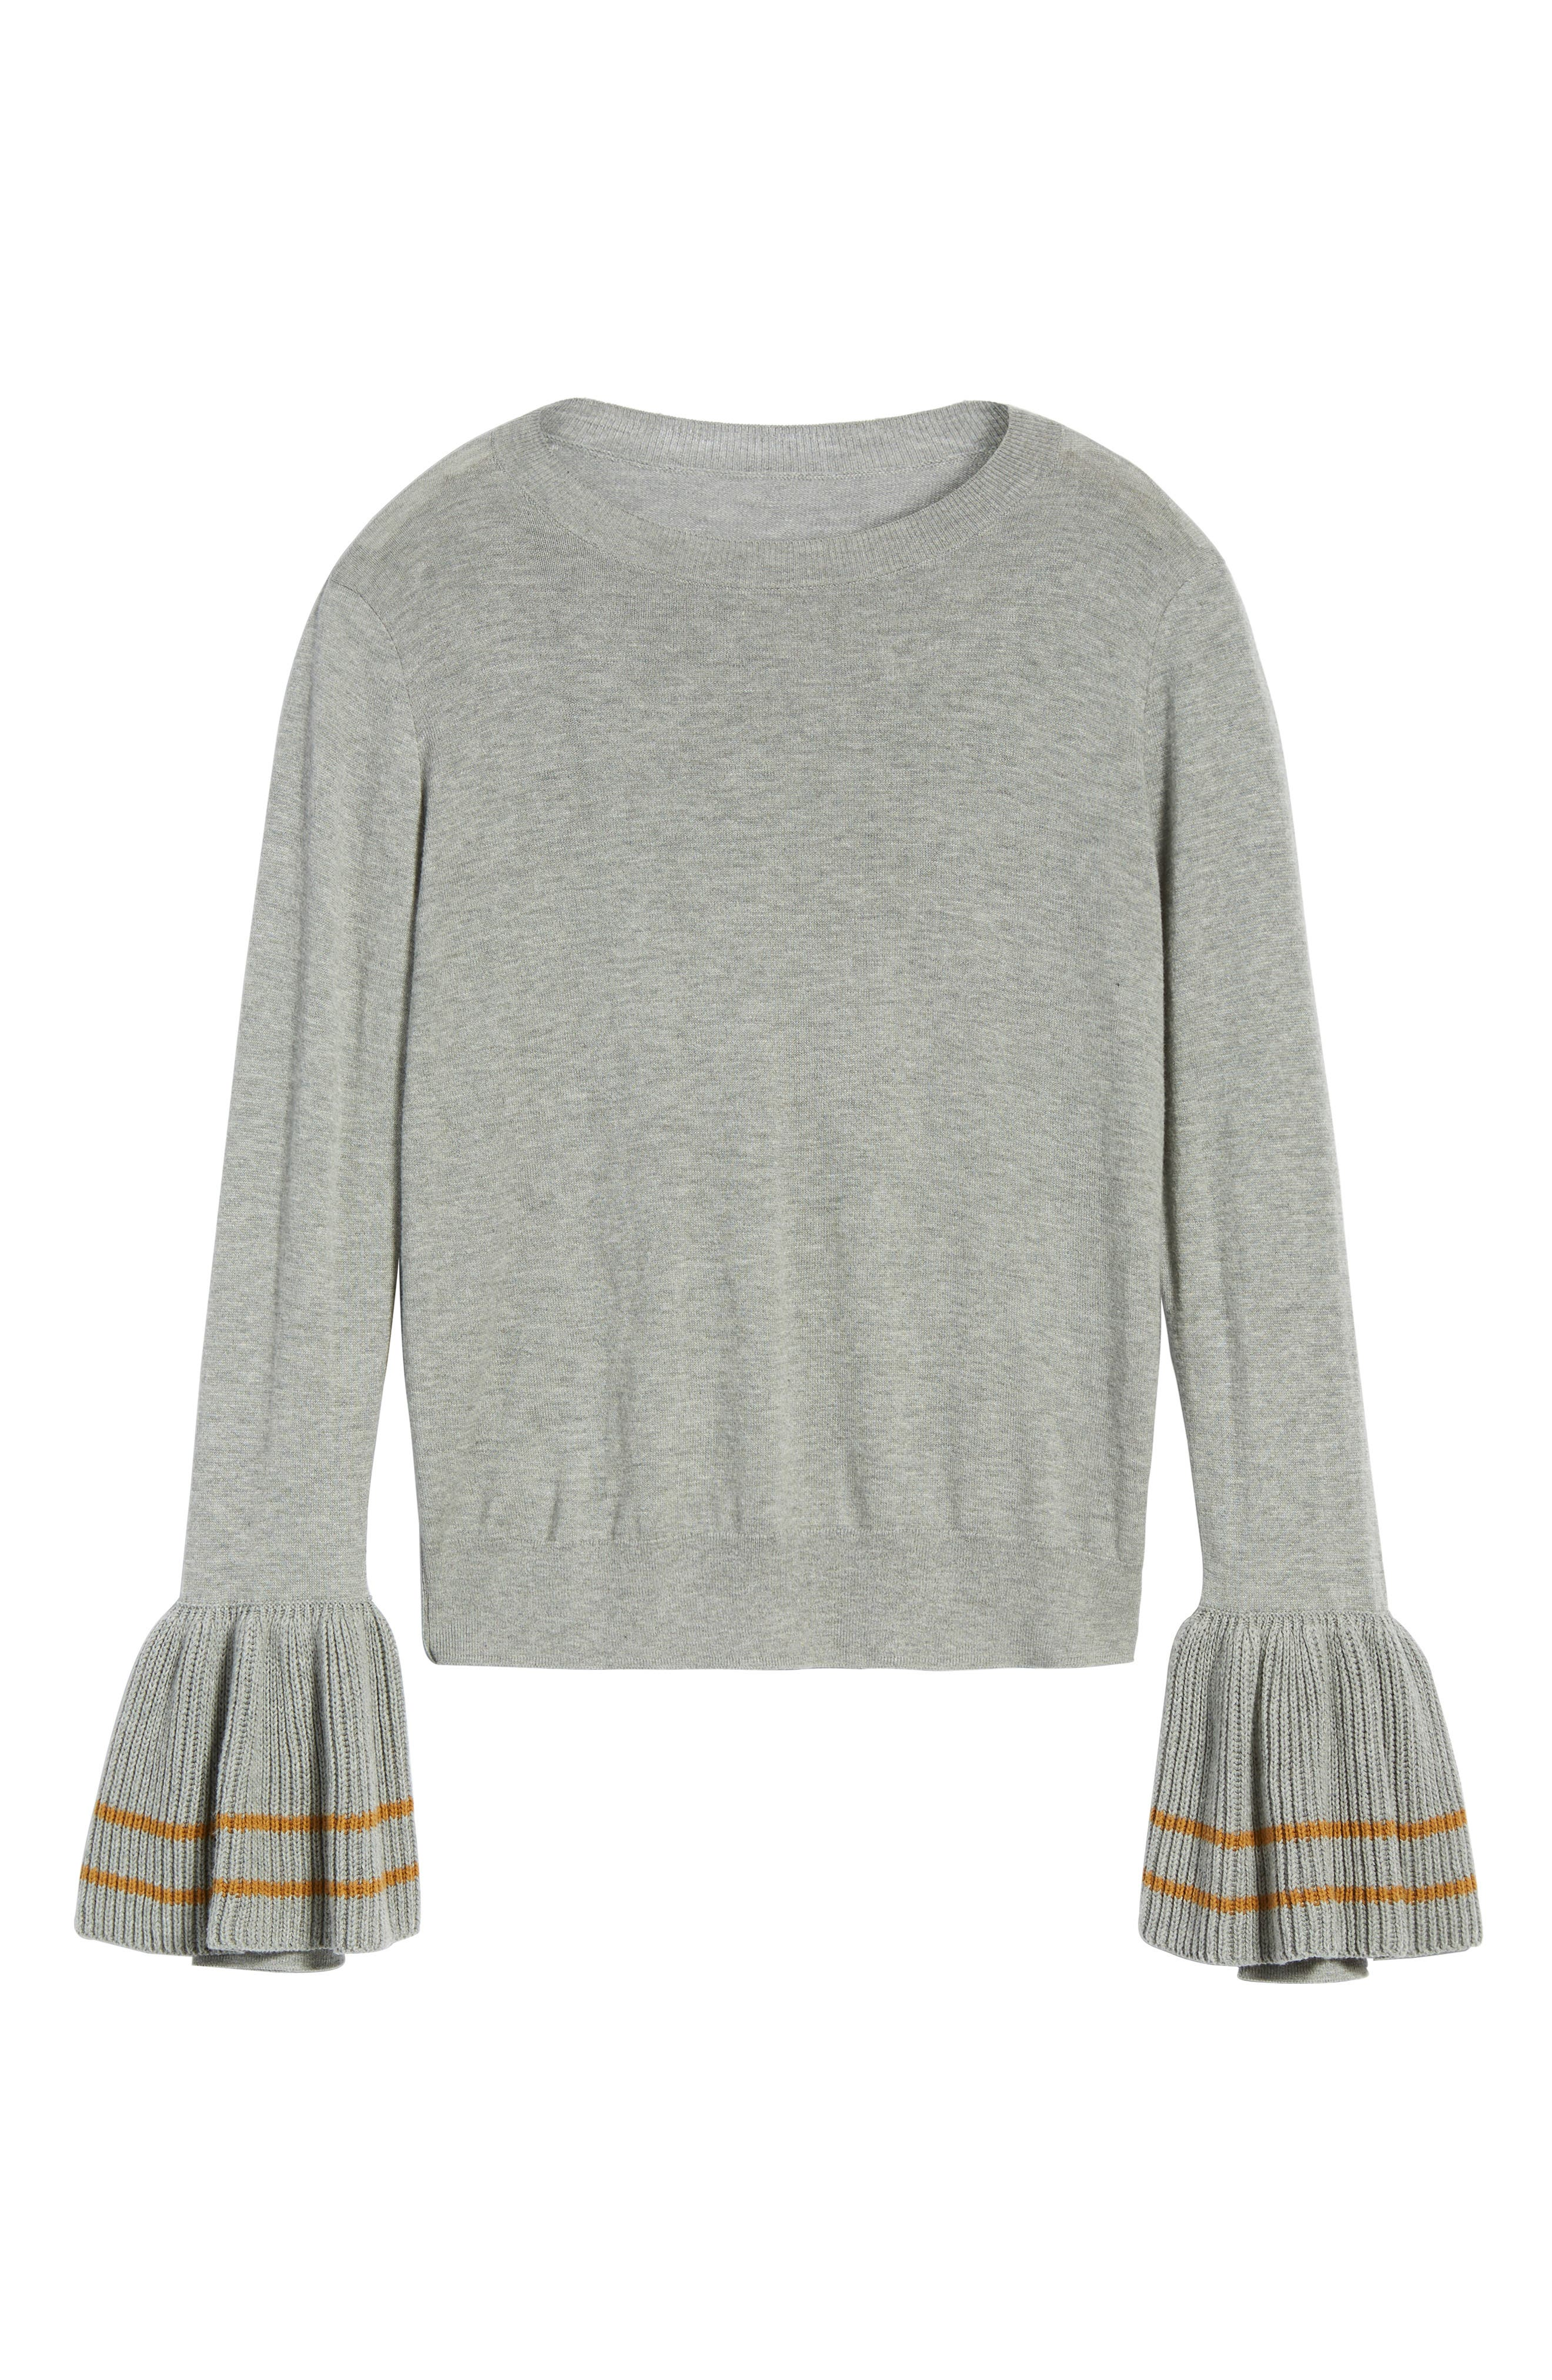 Ruffle Bell Cuff Sweater,                             Alternate thumbnail 6, color,                             030